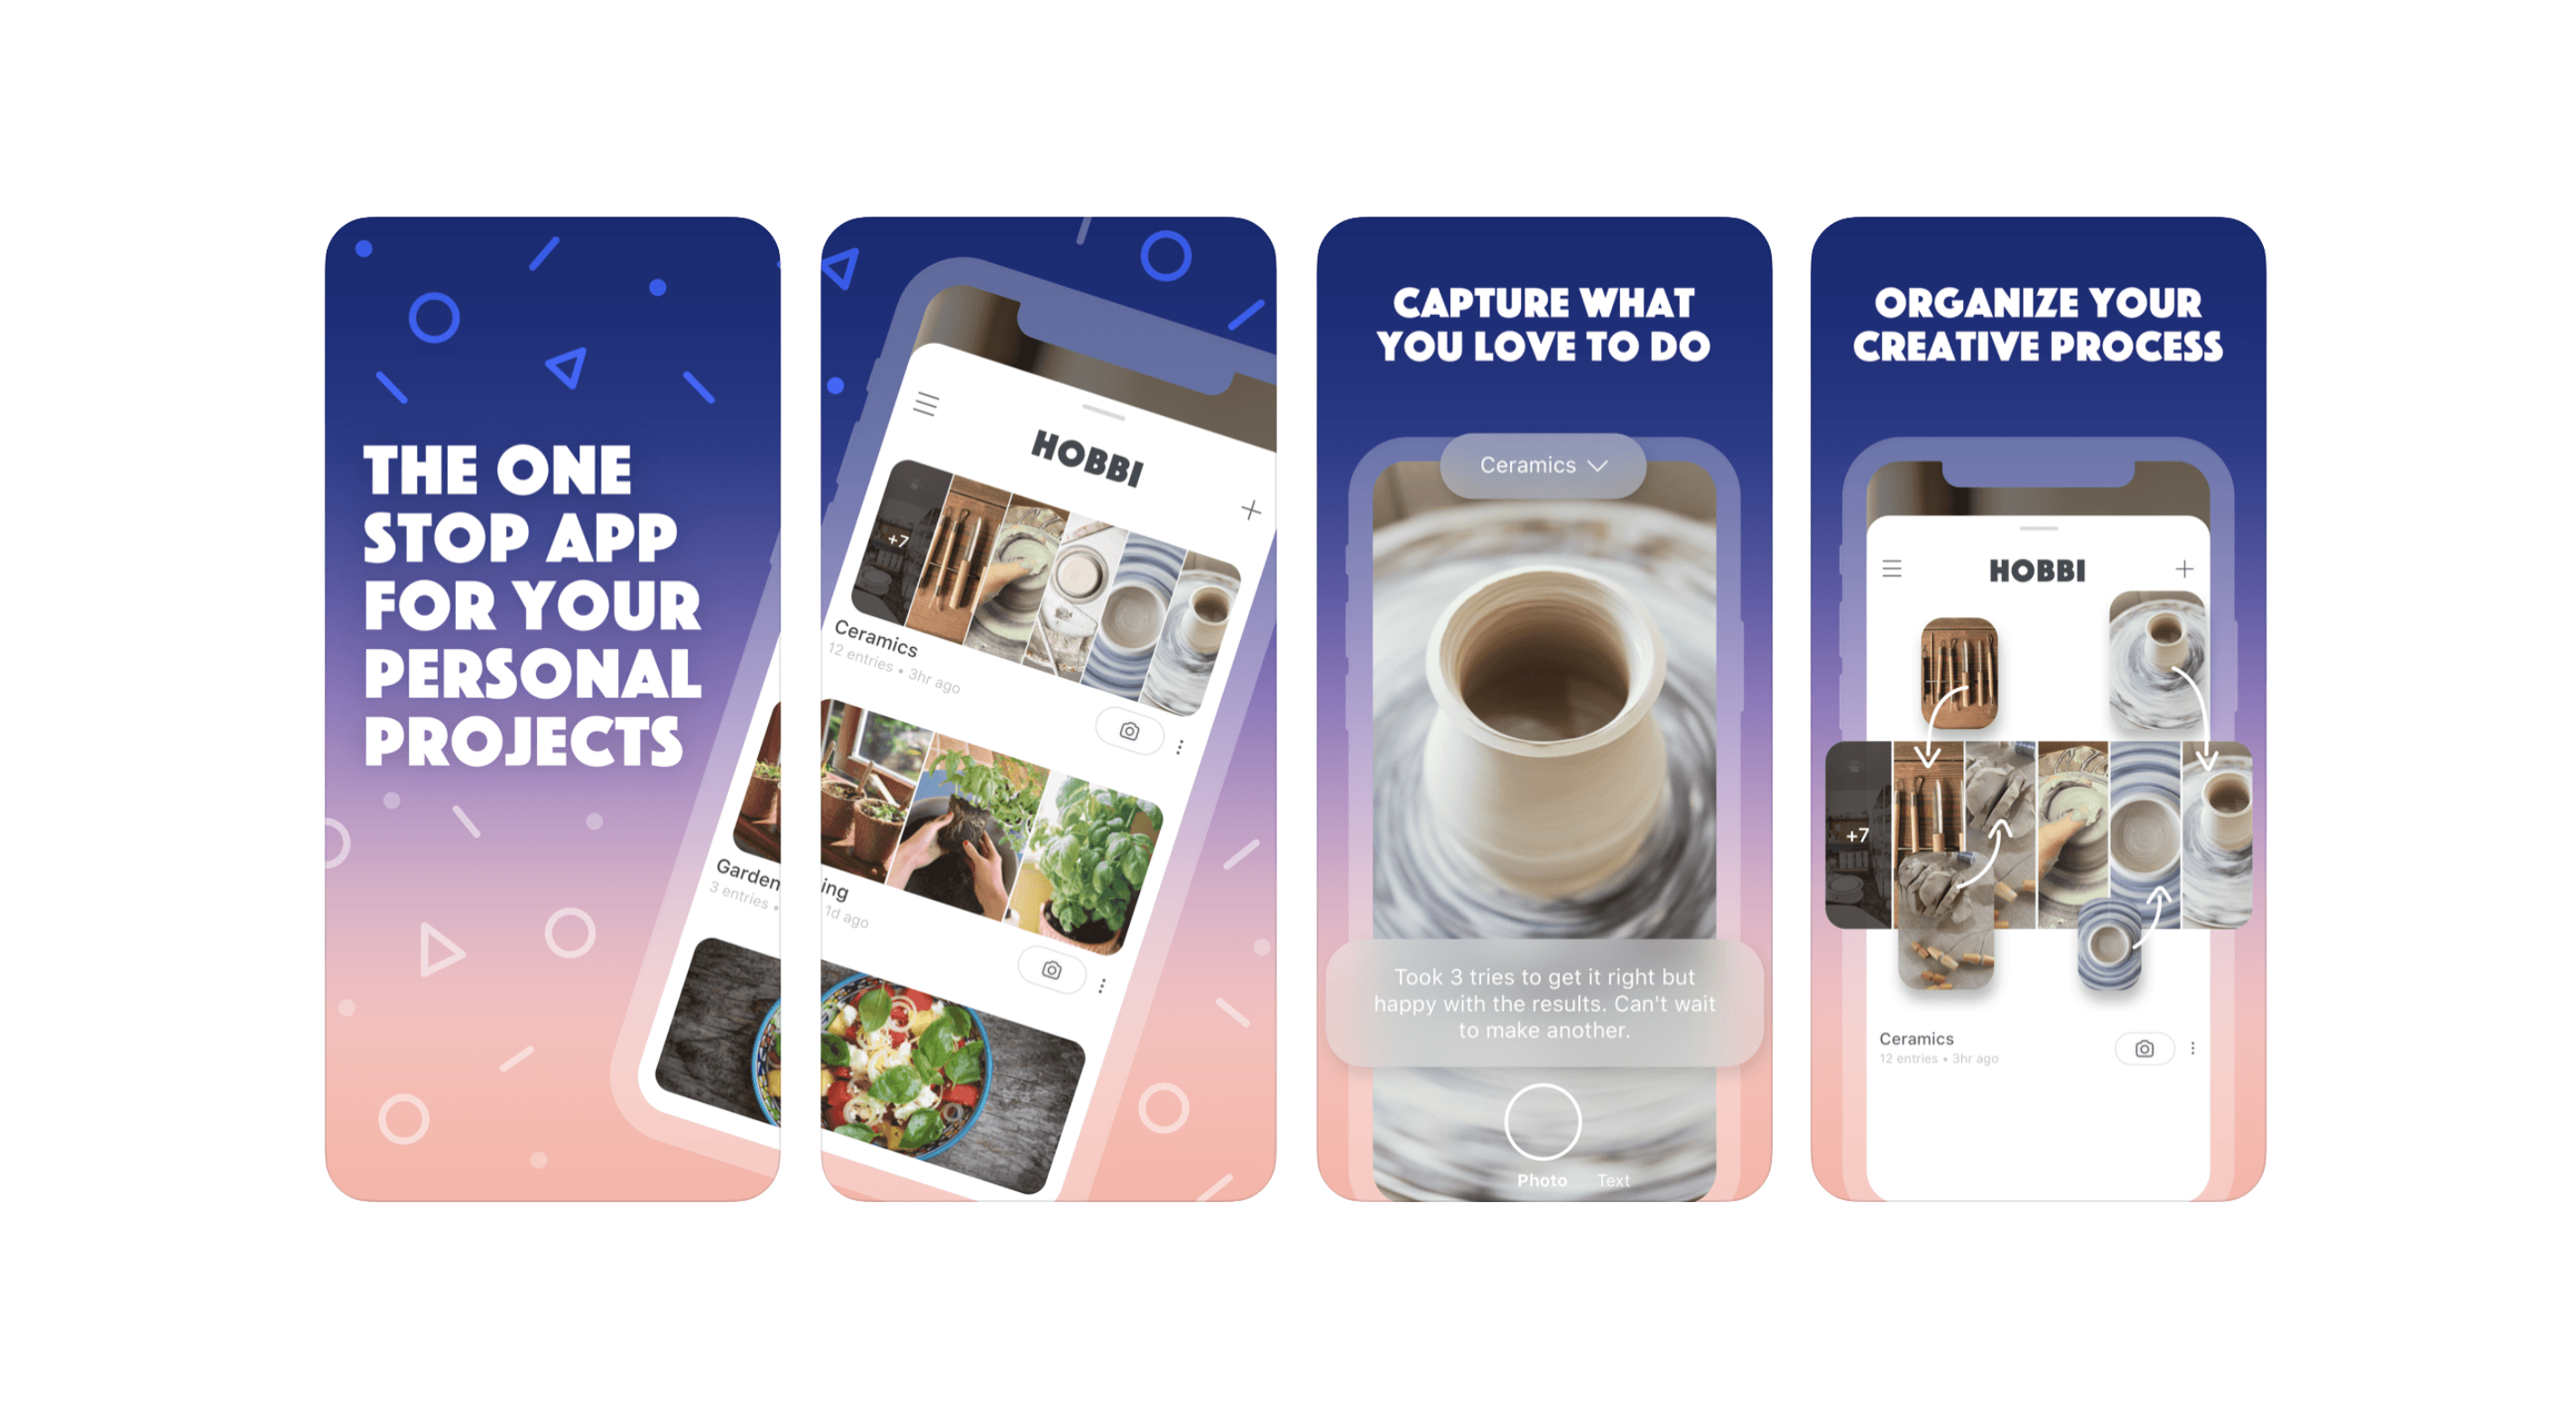 Facebook's latest app tries to beat Pinterest at its own game